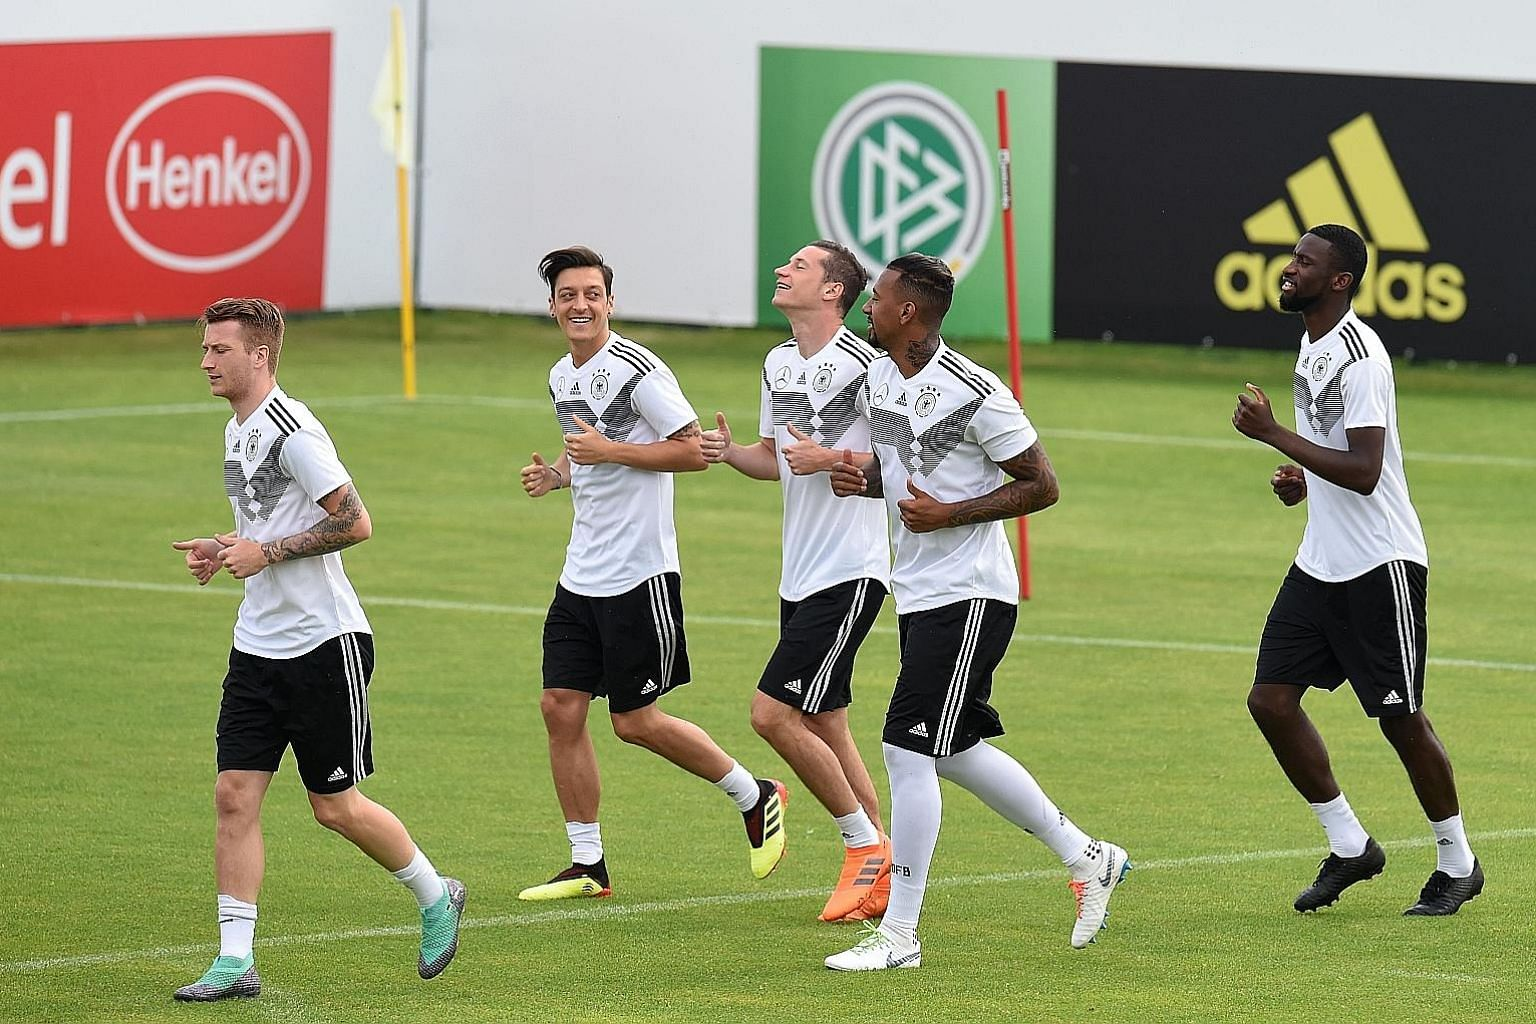 Players from the German team training ahead of the 2018 Fifa World Cup in Russia. Fifa has earmarked US$134 million for insurance for clubs whose players get injured in this year's event.